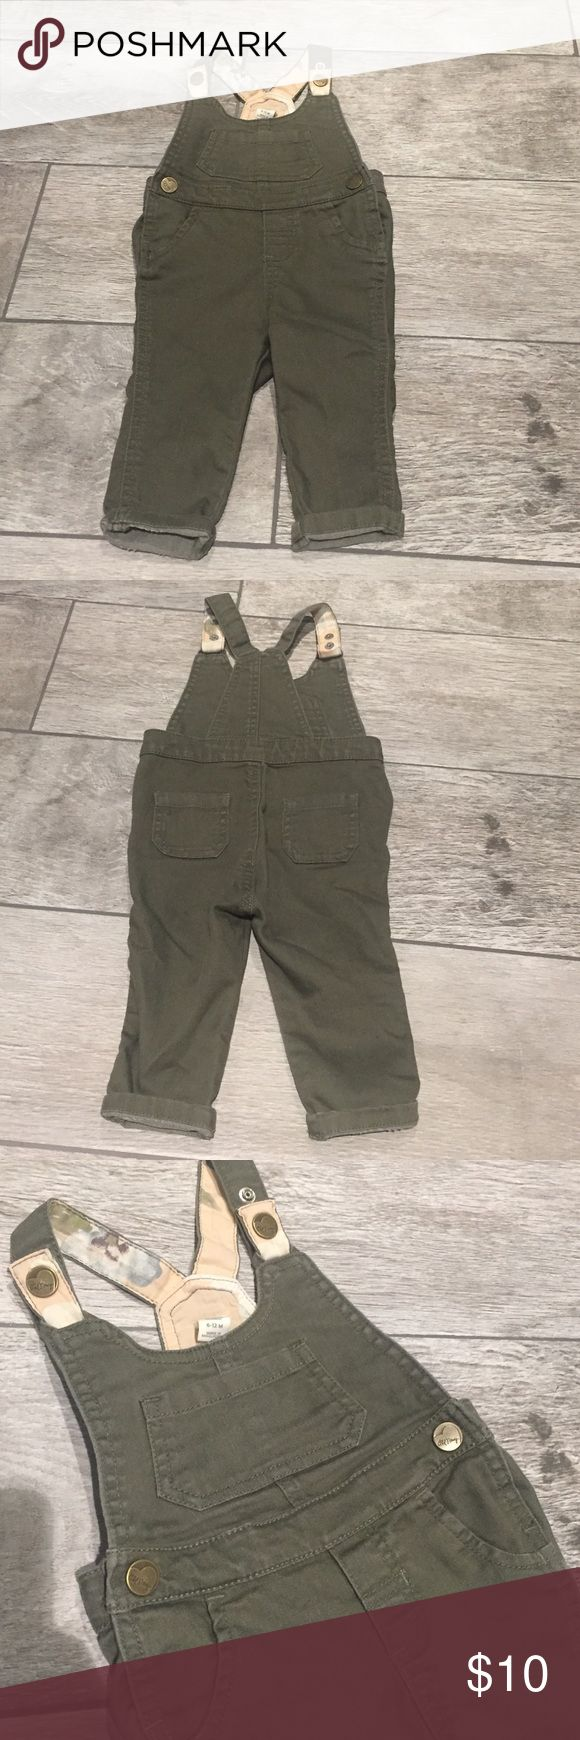 Baby girl's Old Navy overalls Camo green, adjustable strap overalls Old Navy One Pieces